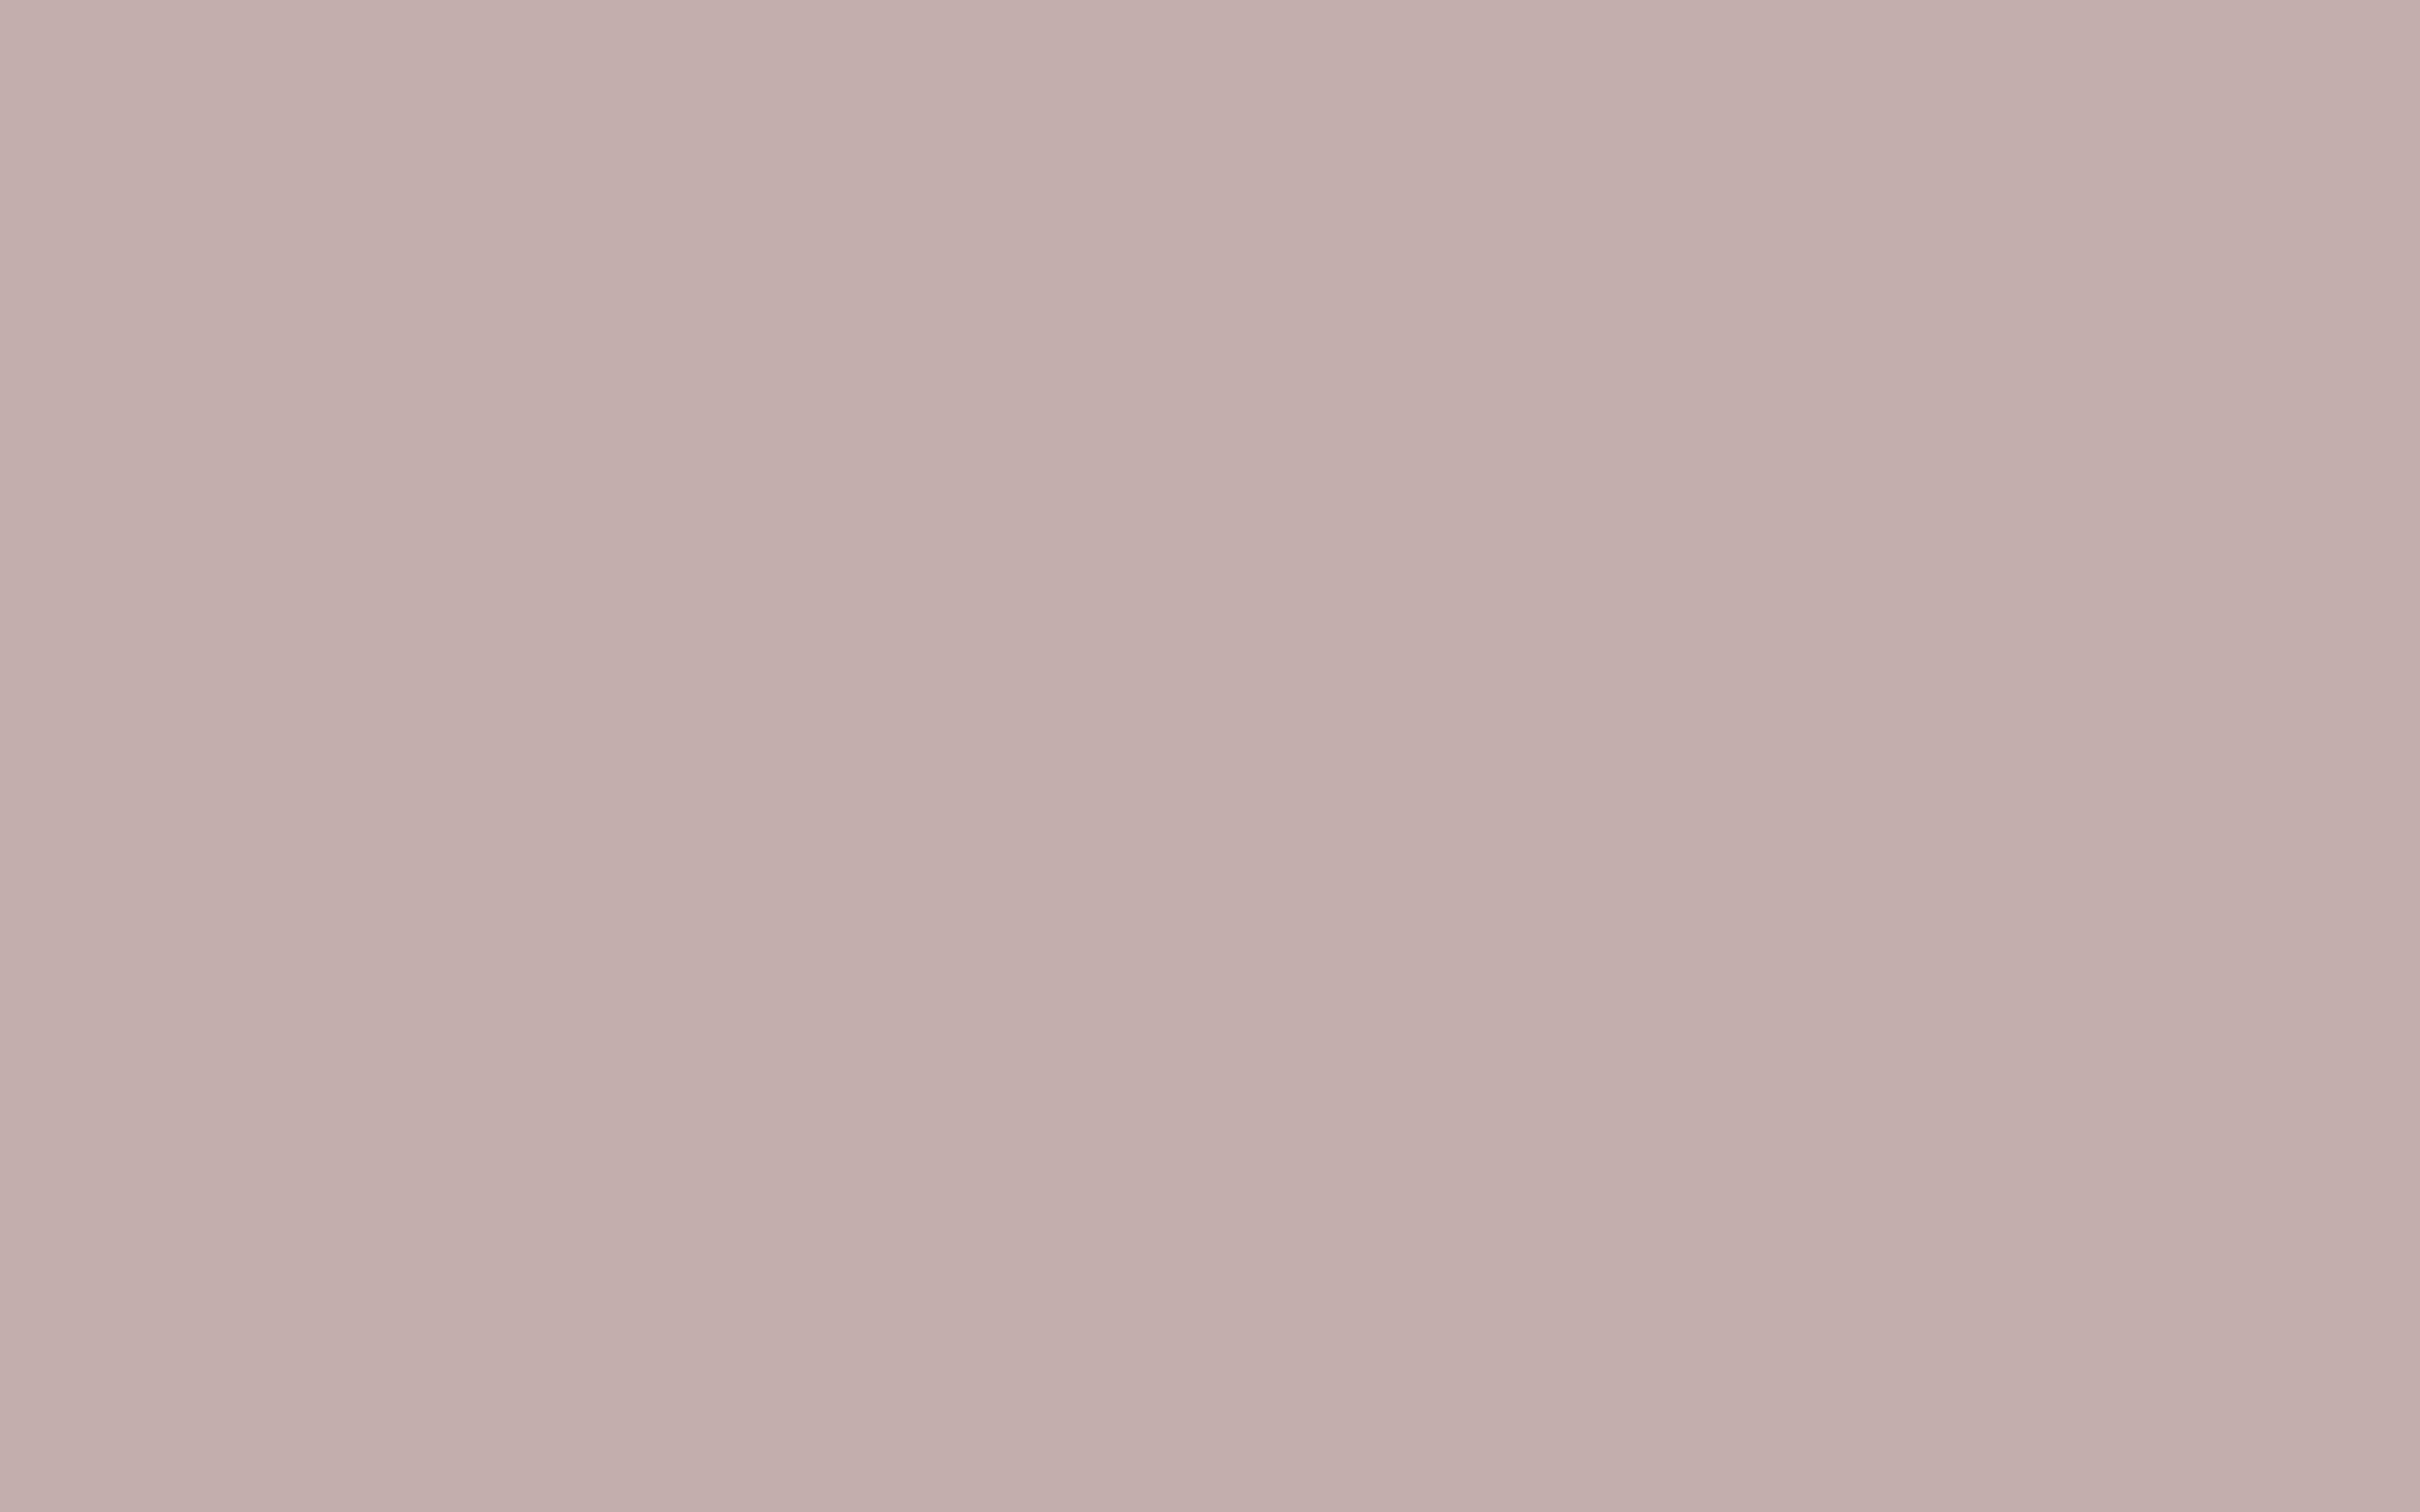 2560x1600 Silver Pink Solid Color Background